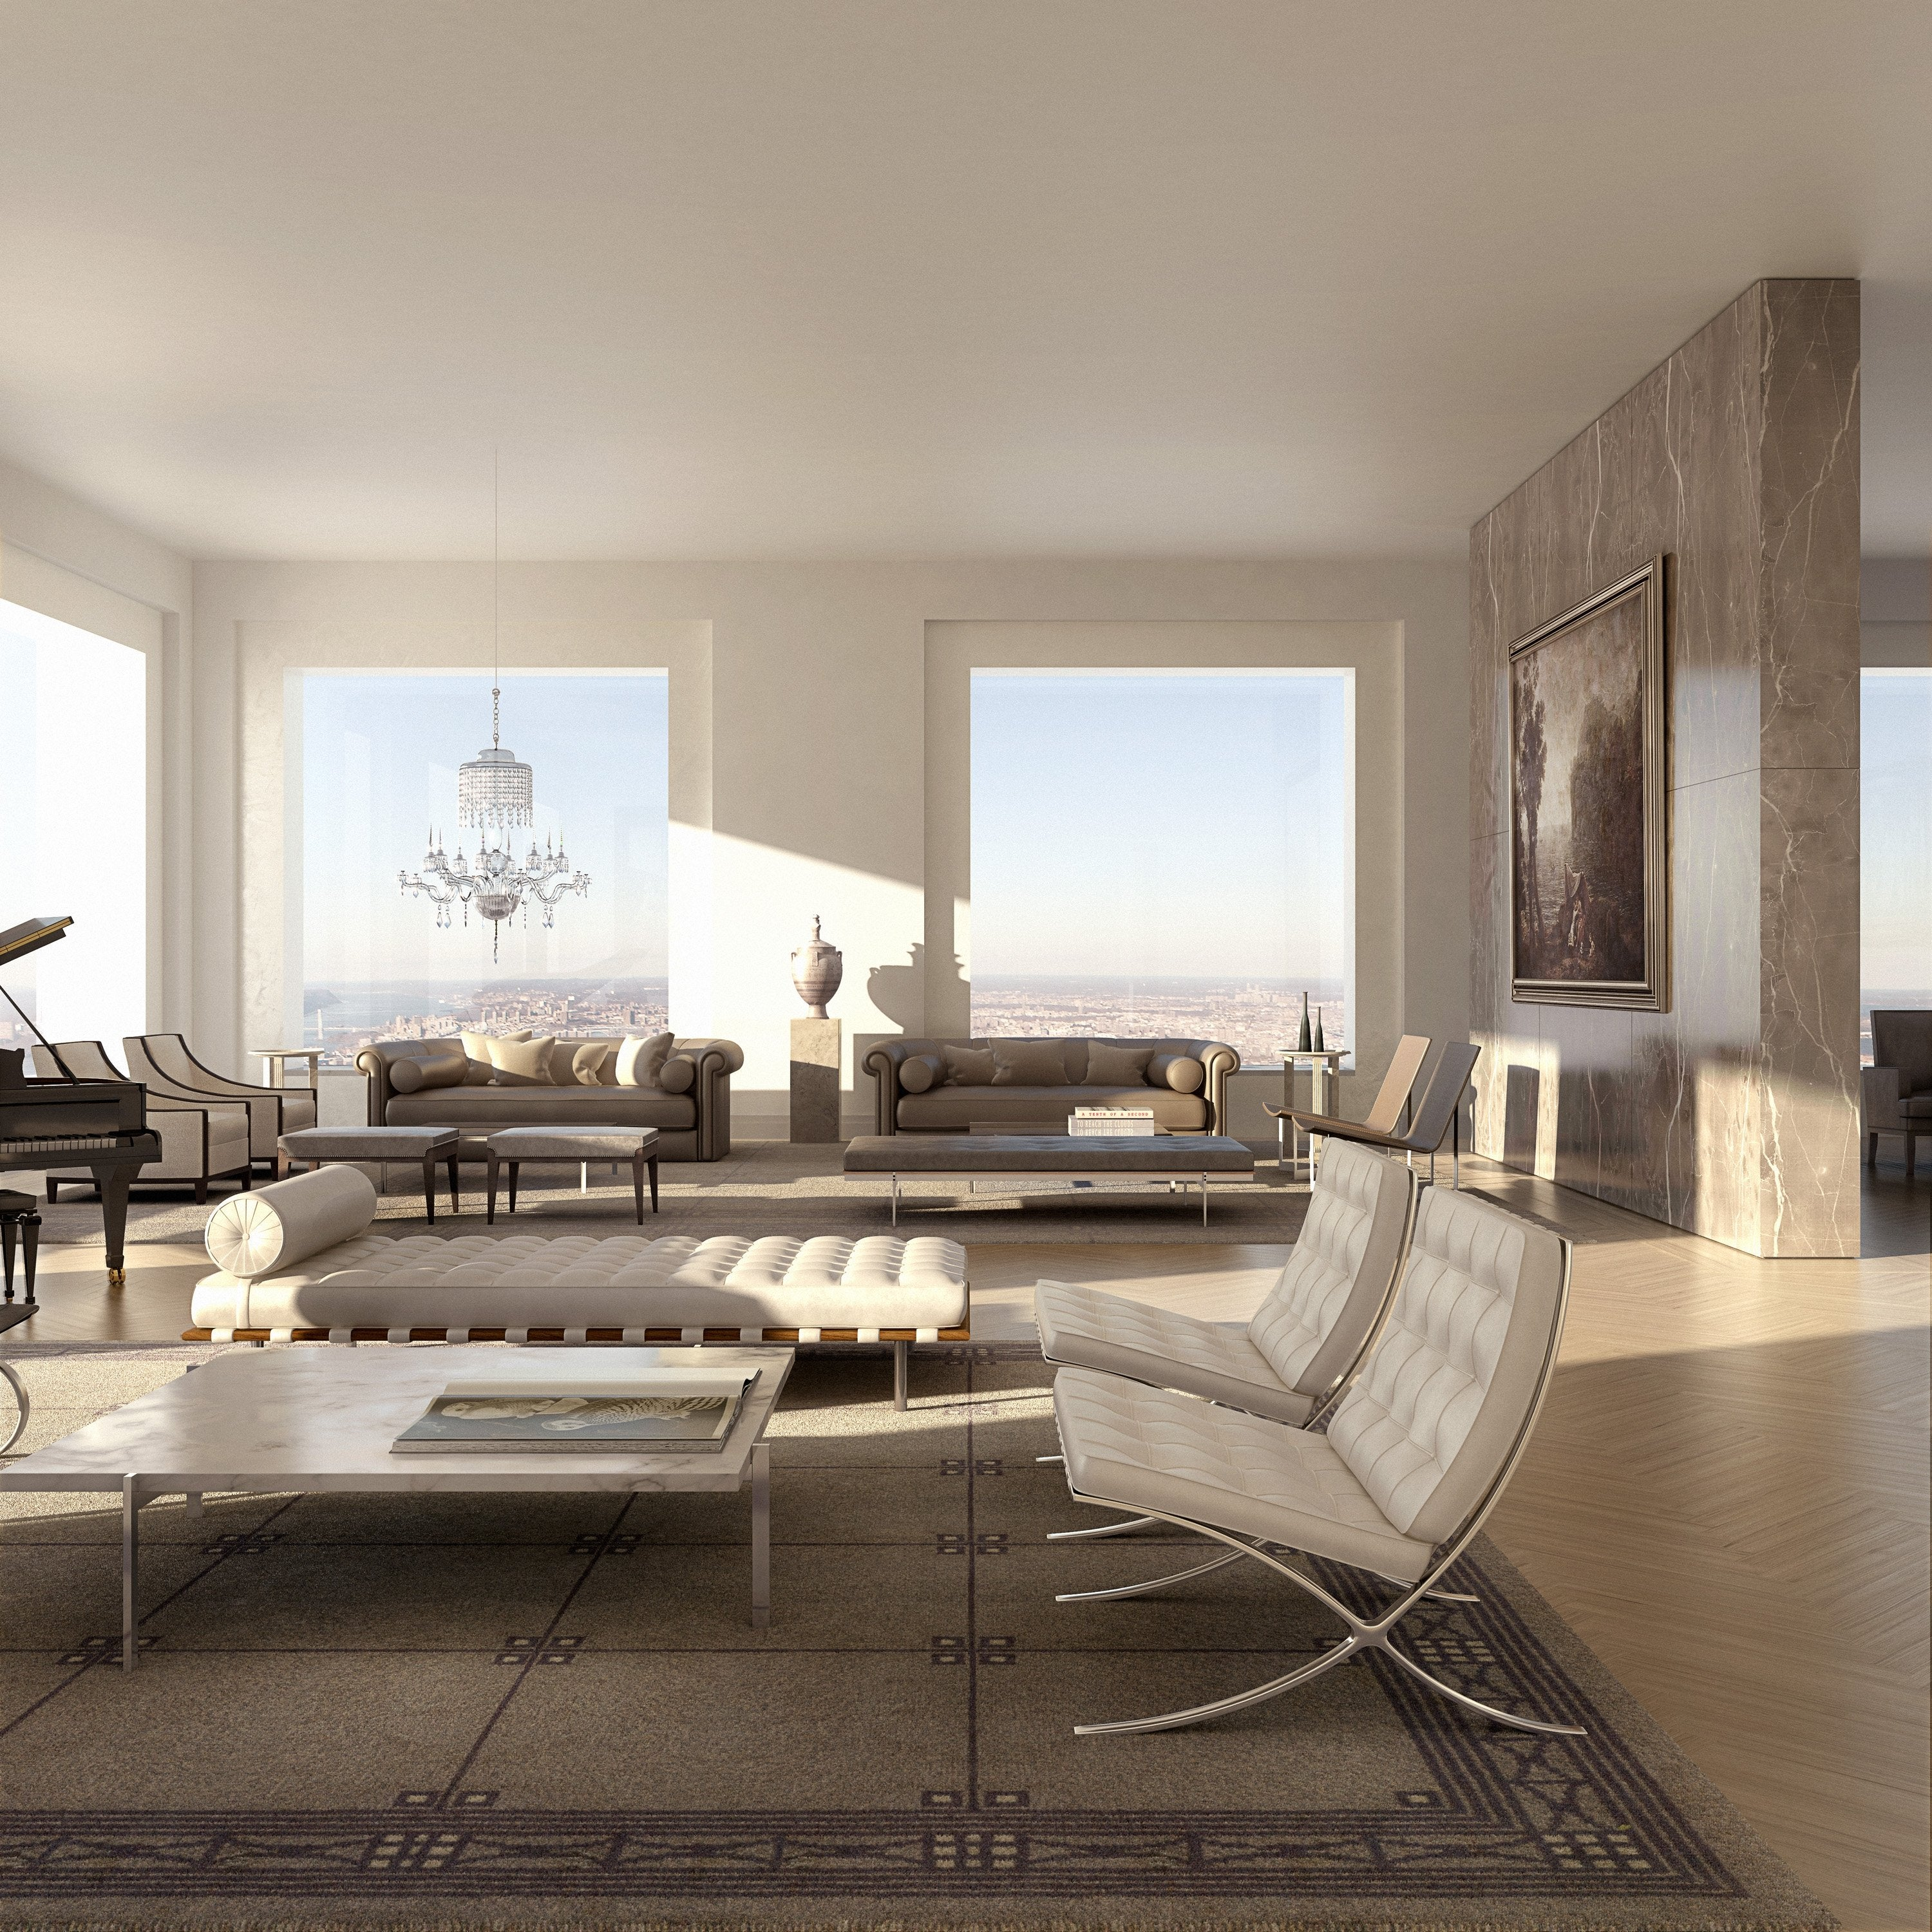 New Apartments Topped On On The L A: The View From The Top Of NYC's Tallest New Apartment